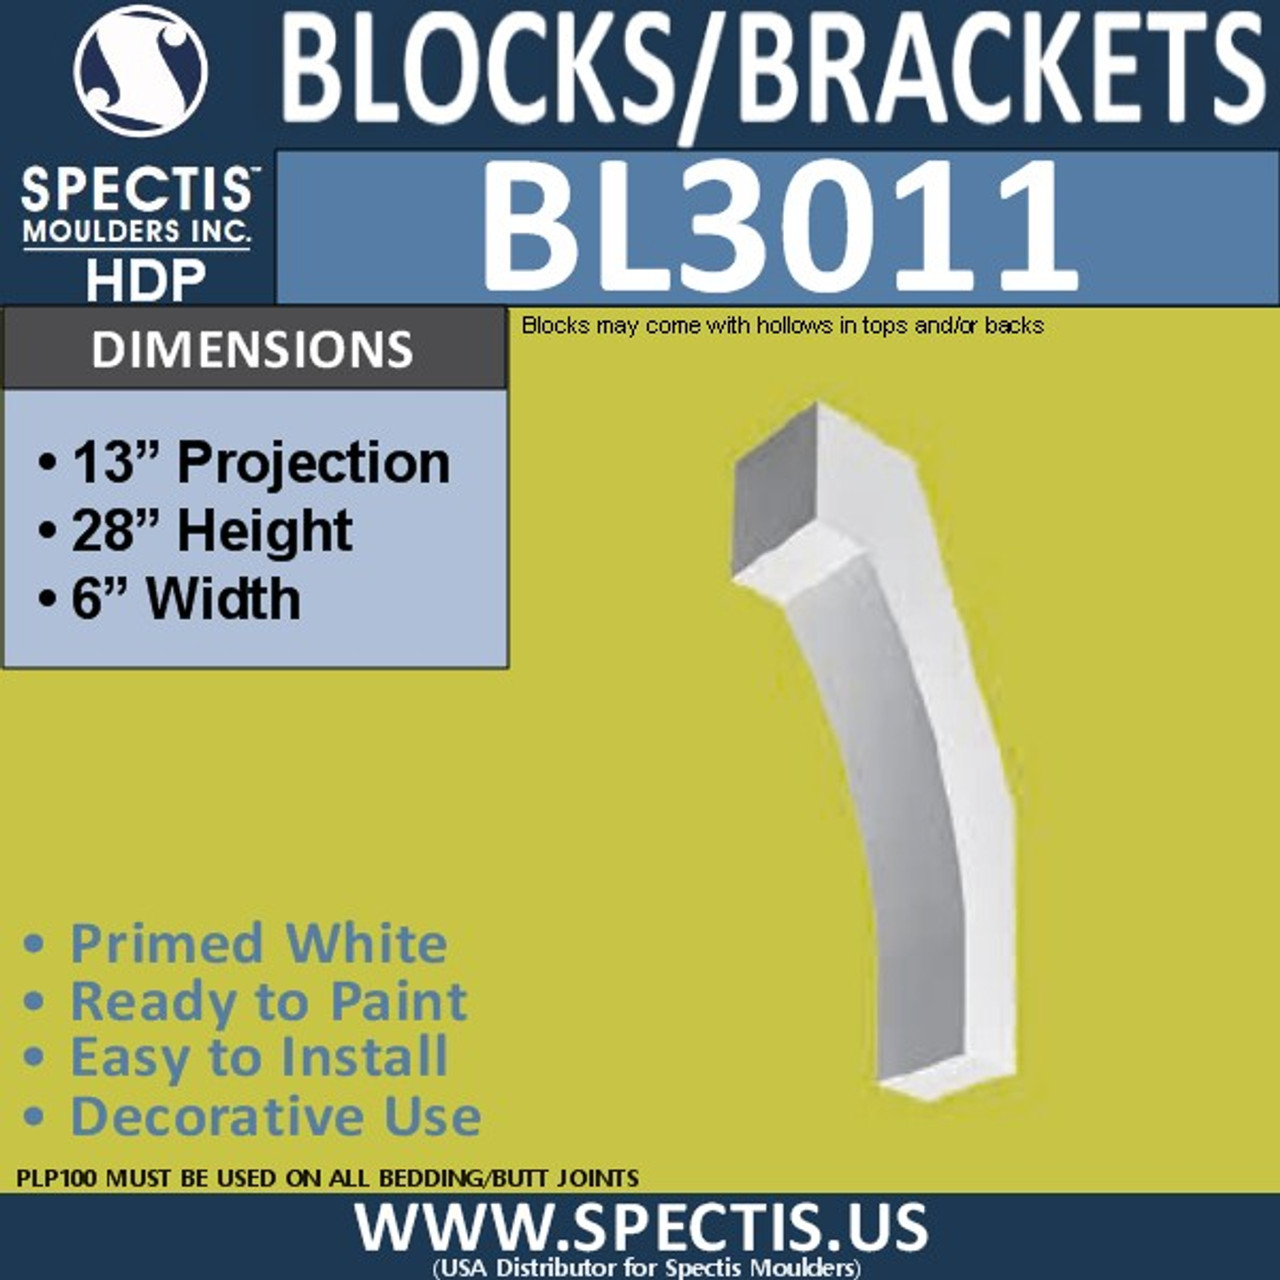 "BL3011 Eave Block or Bracket 6""W x 28""H x 13"" P"